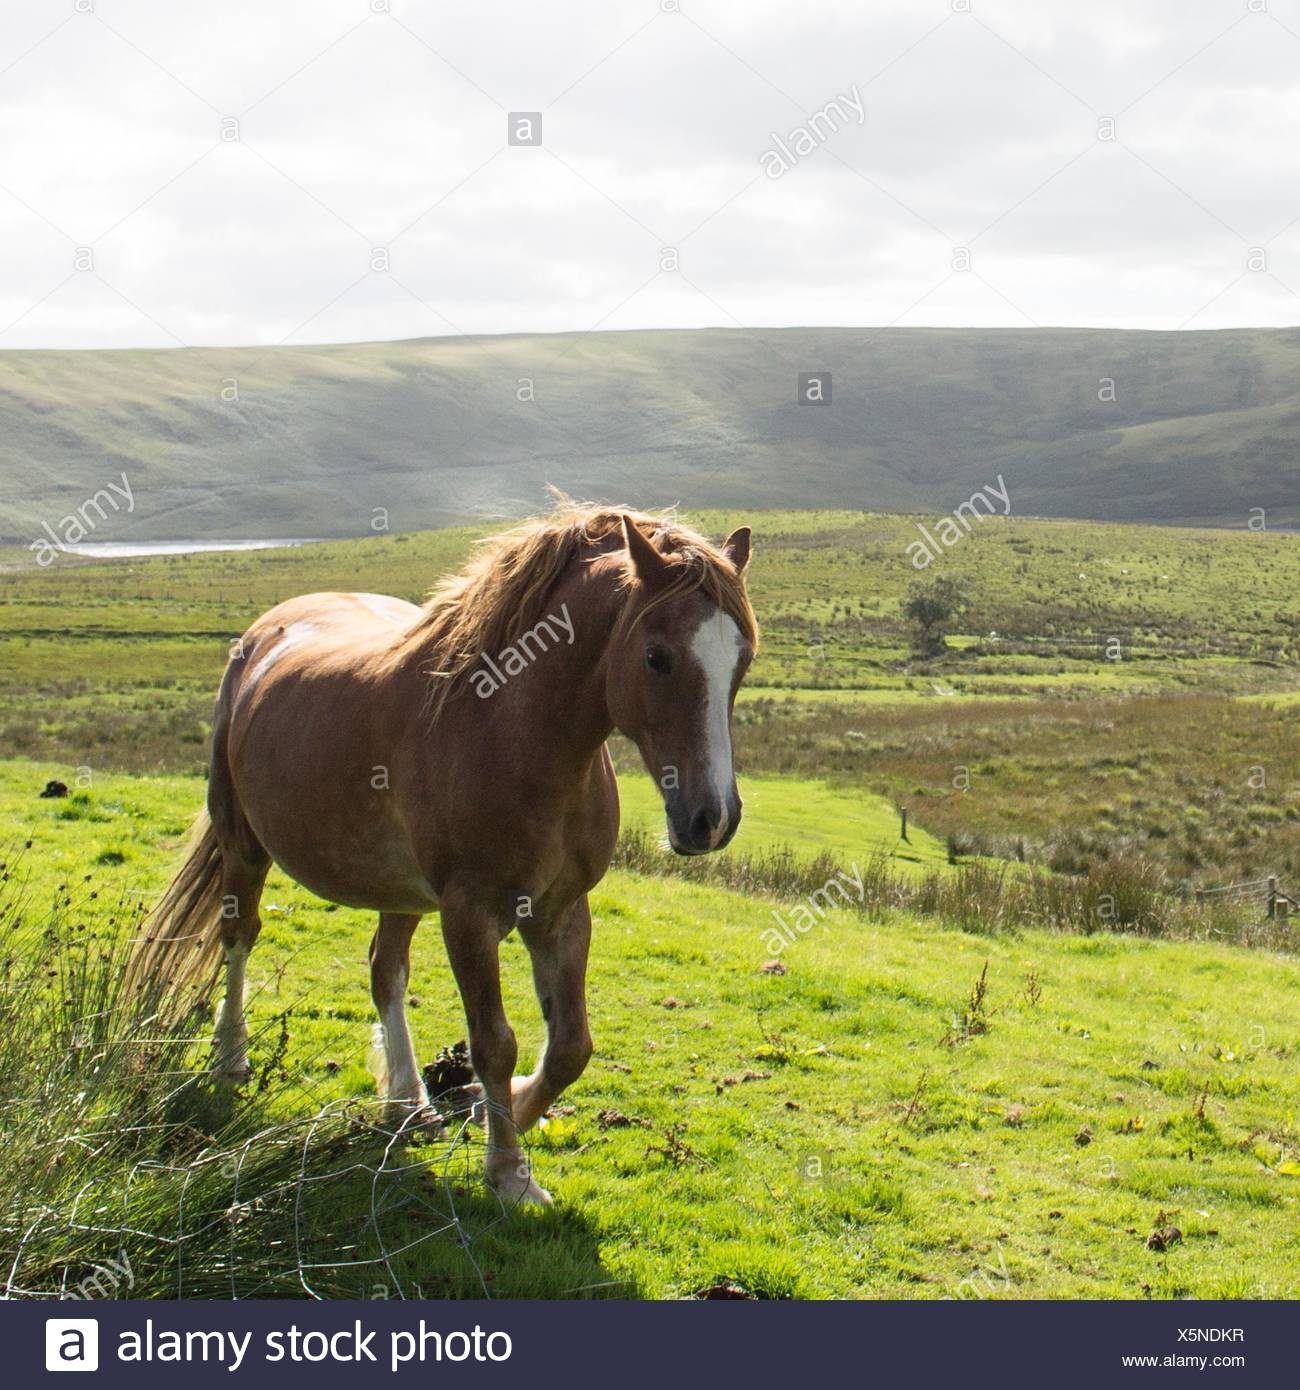 Horse in countryside - Stock Image